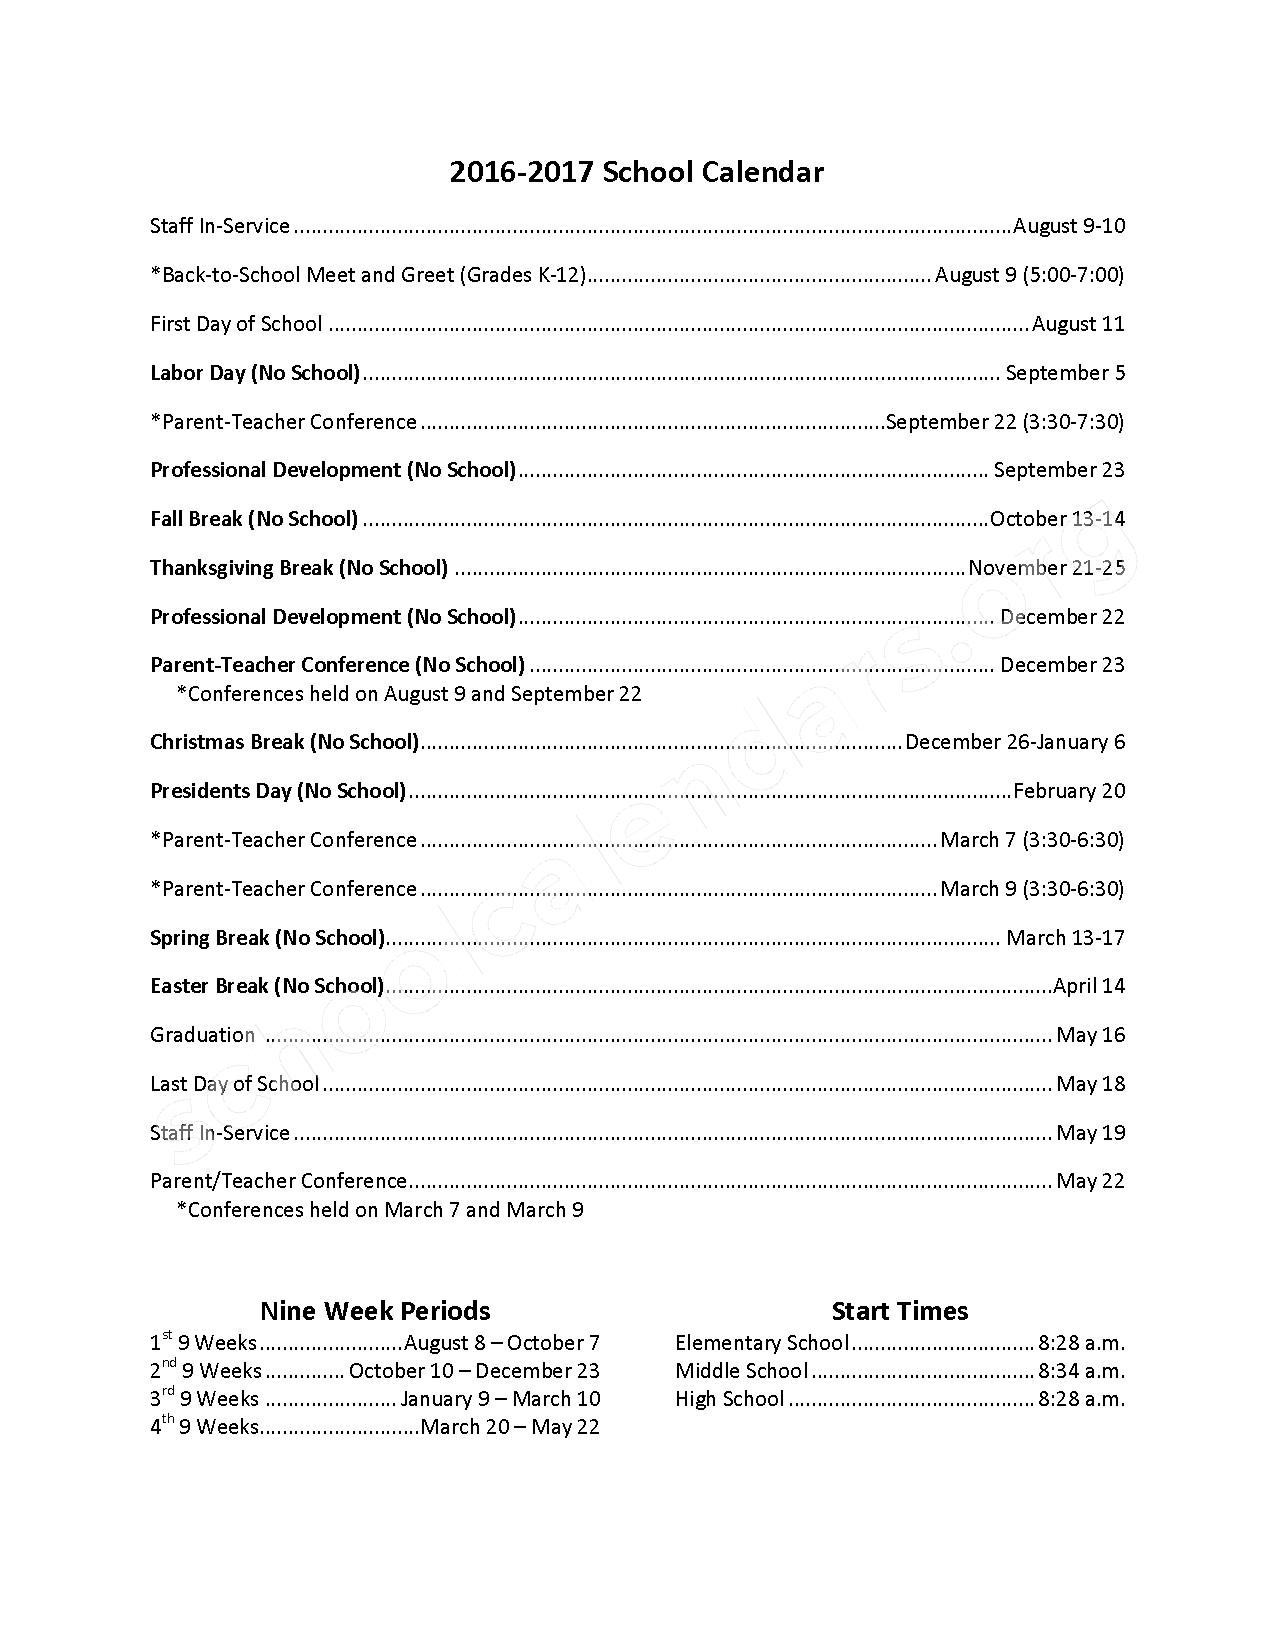 2016 - 2017  District Calendar – Stigler Elementary School – page 1